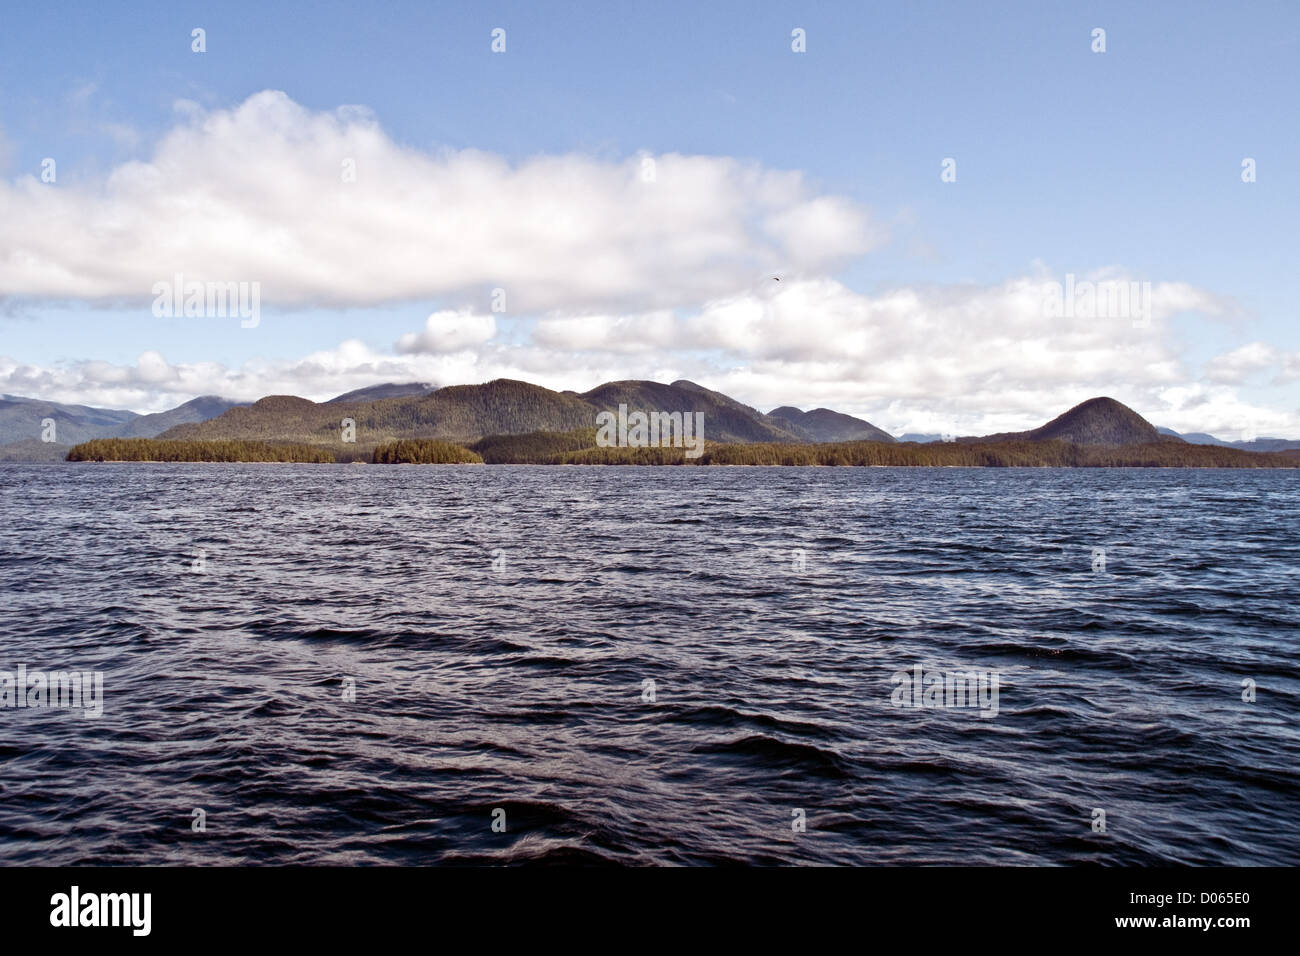 A view of Cunningham Island along British Columbia's Pacific Central Coast, Canada. Stock Photo